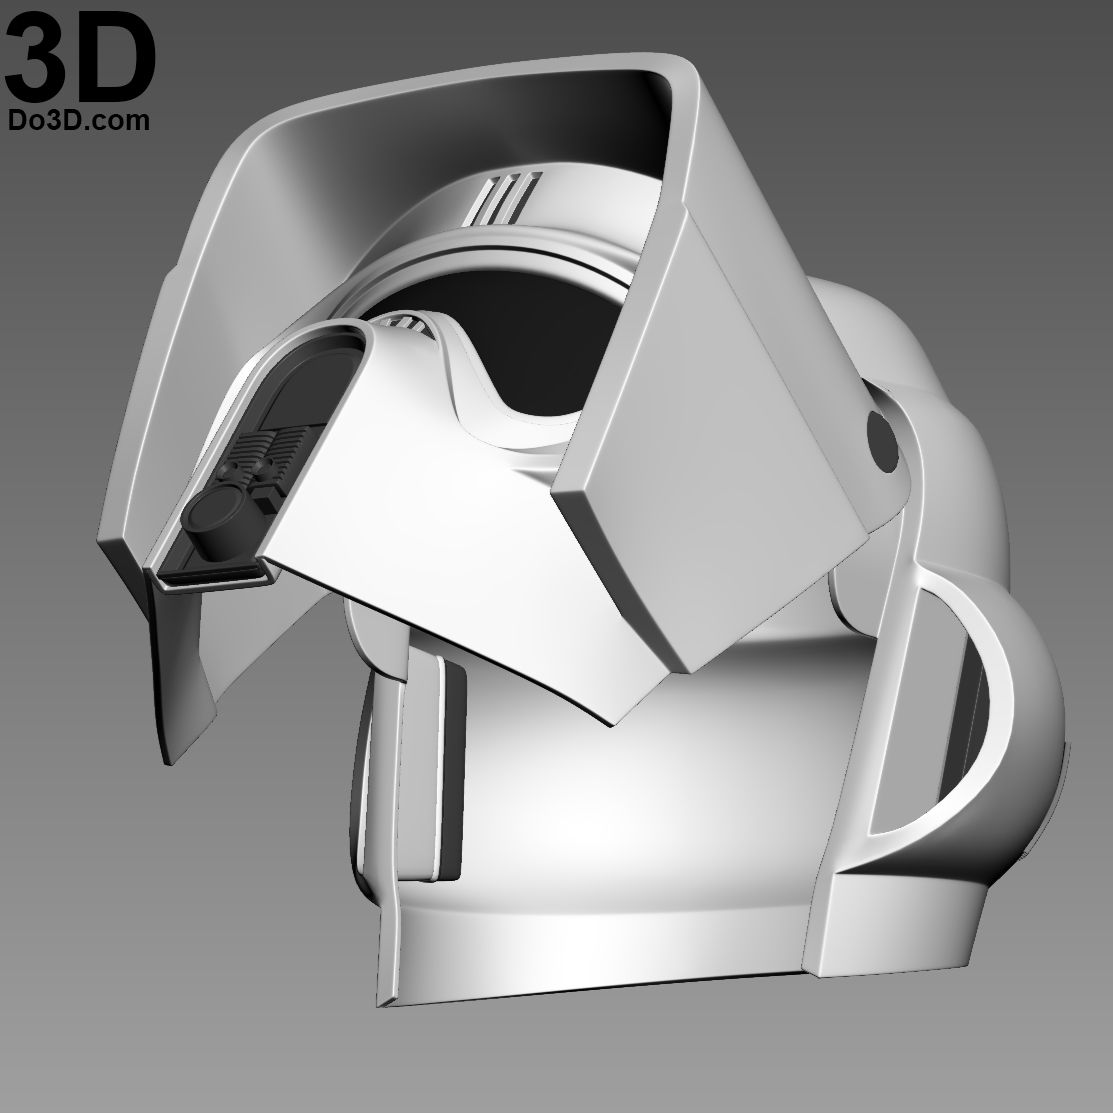 23 Super Cool Star Wars Items From The 3d Printer 3d Make 4